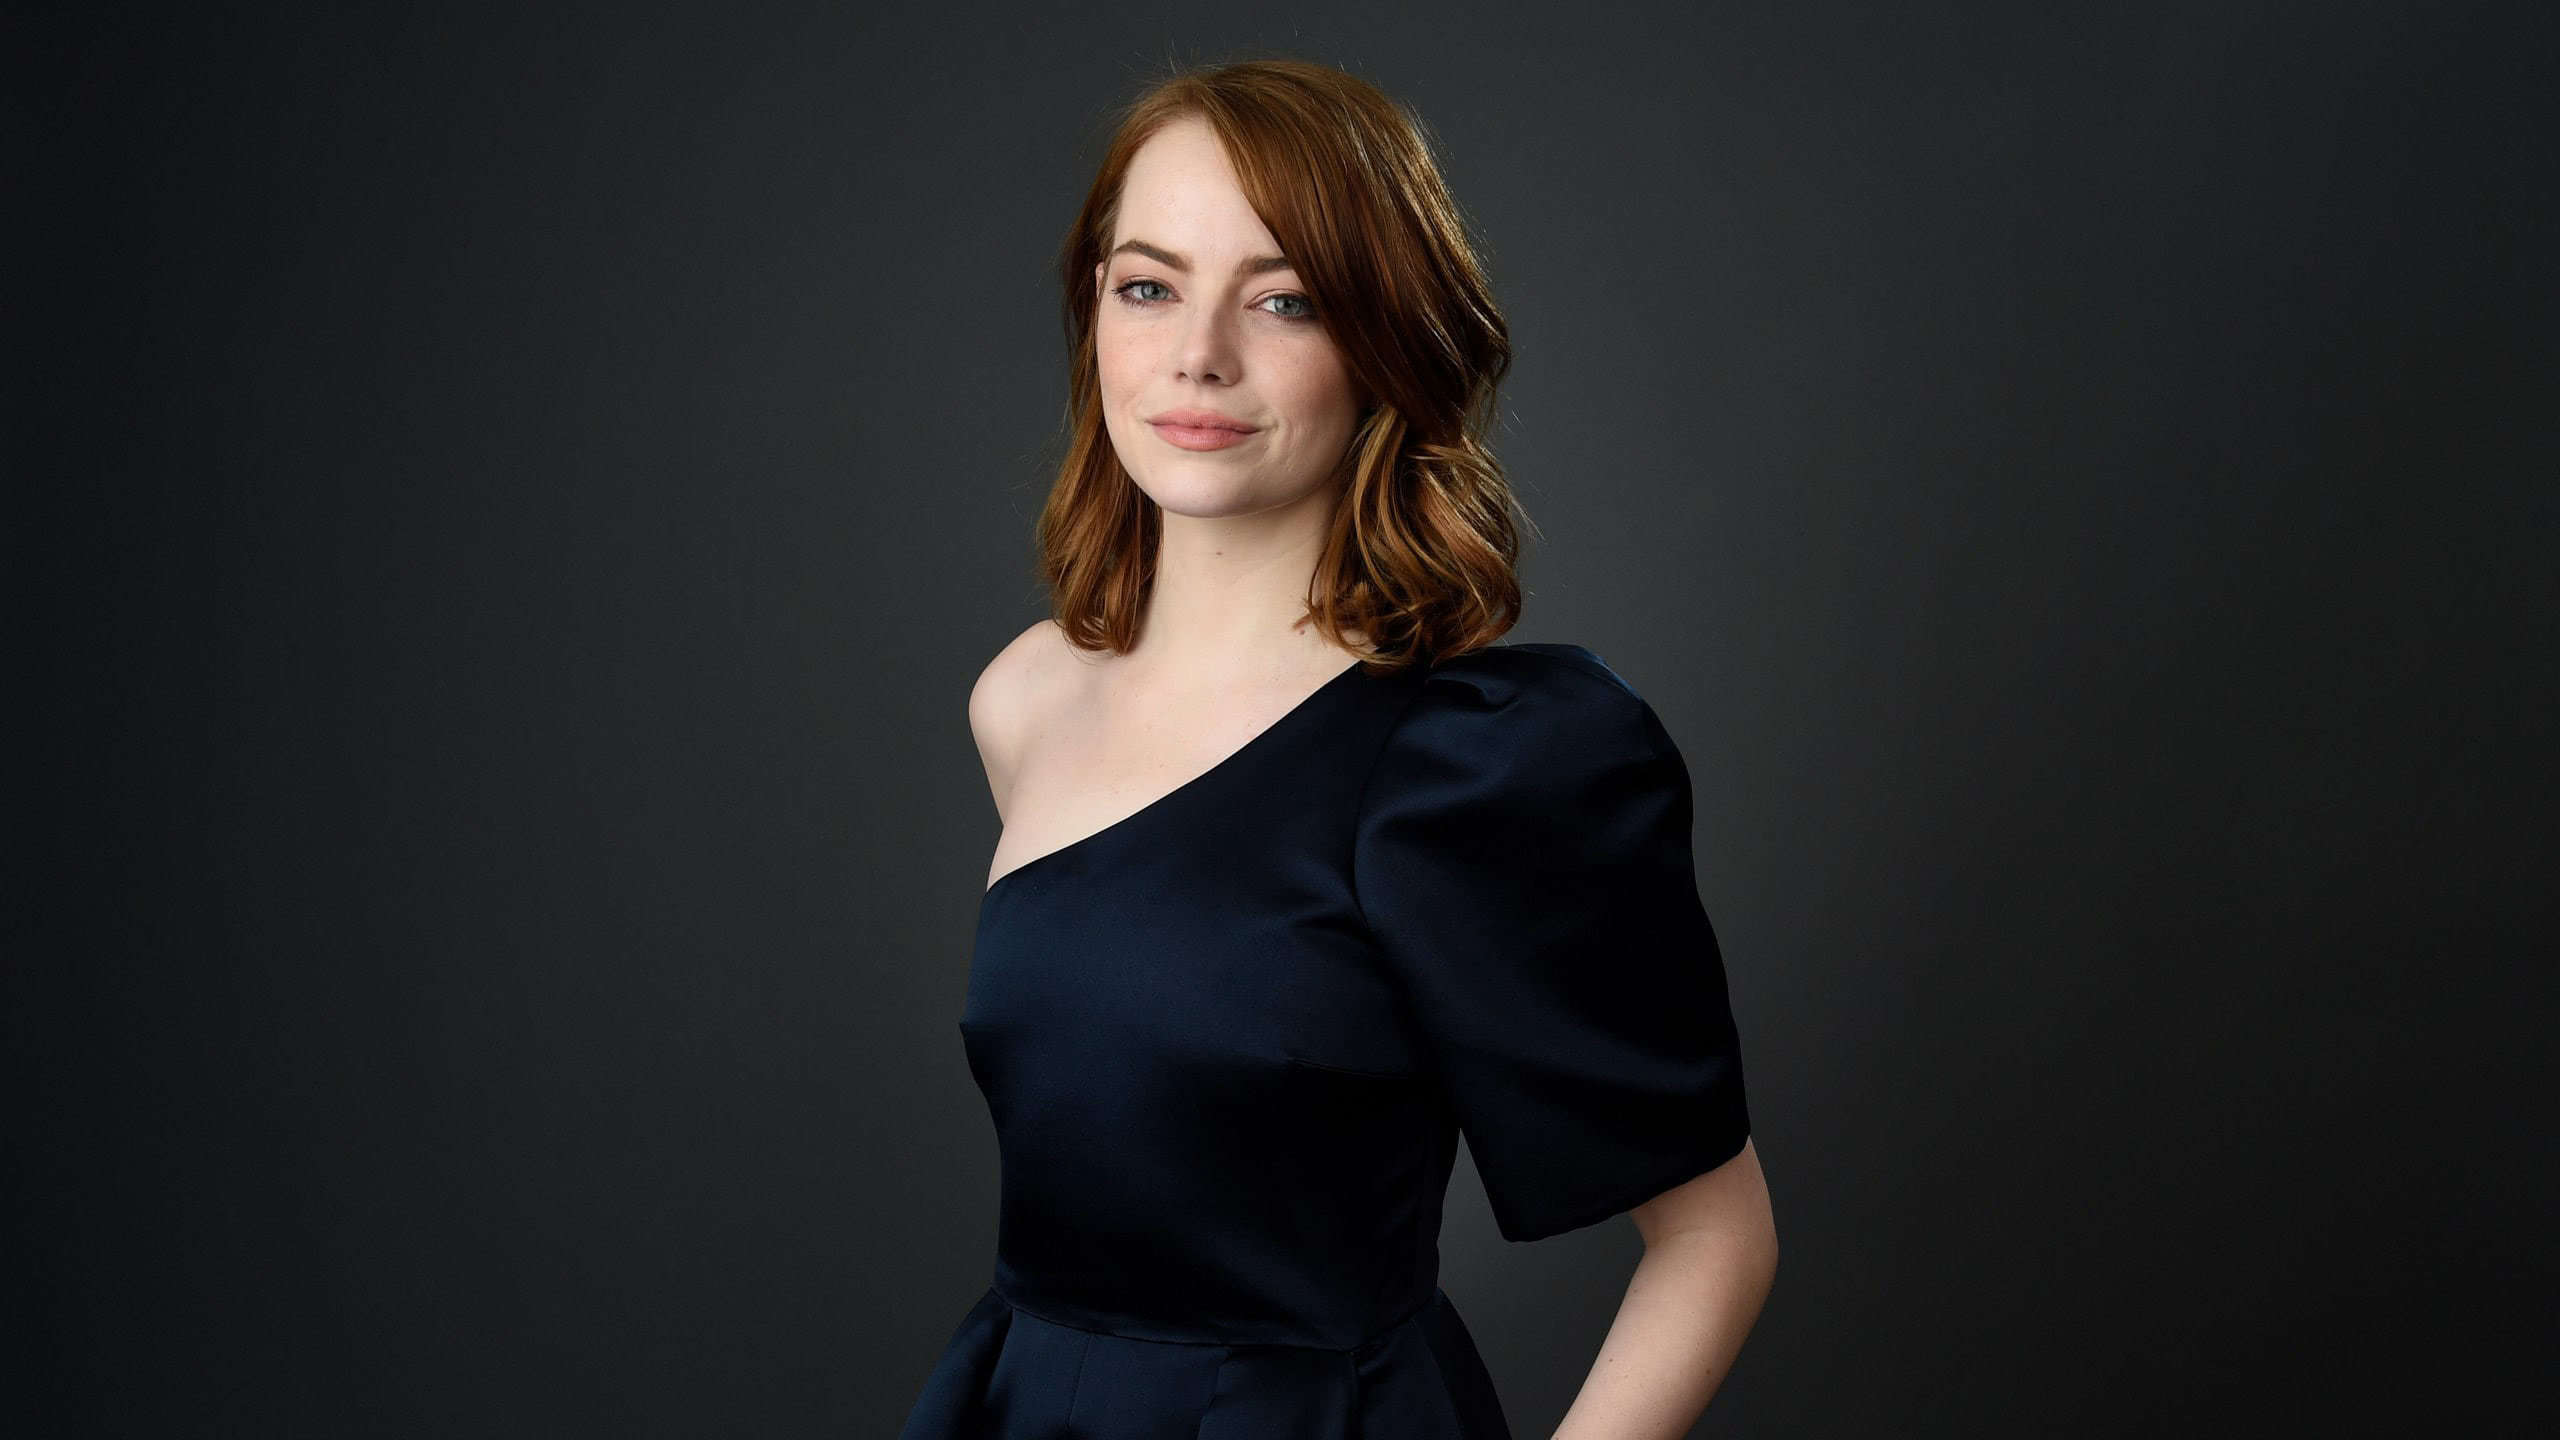 Emma Stone 2019 Wallpapers 40094